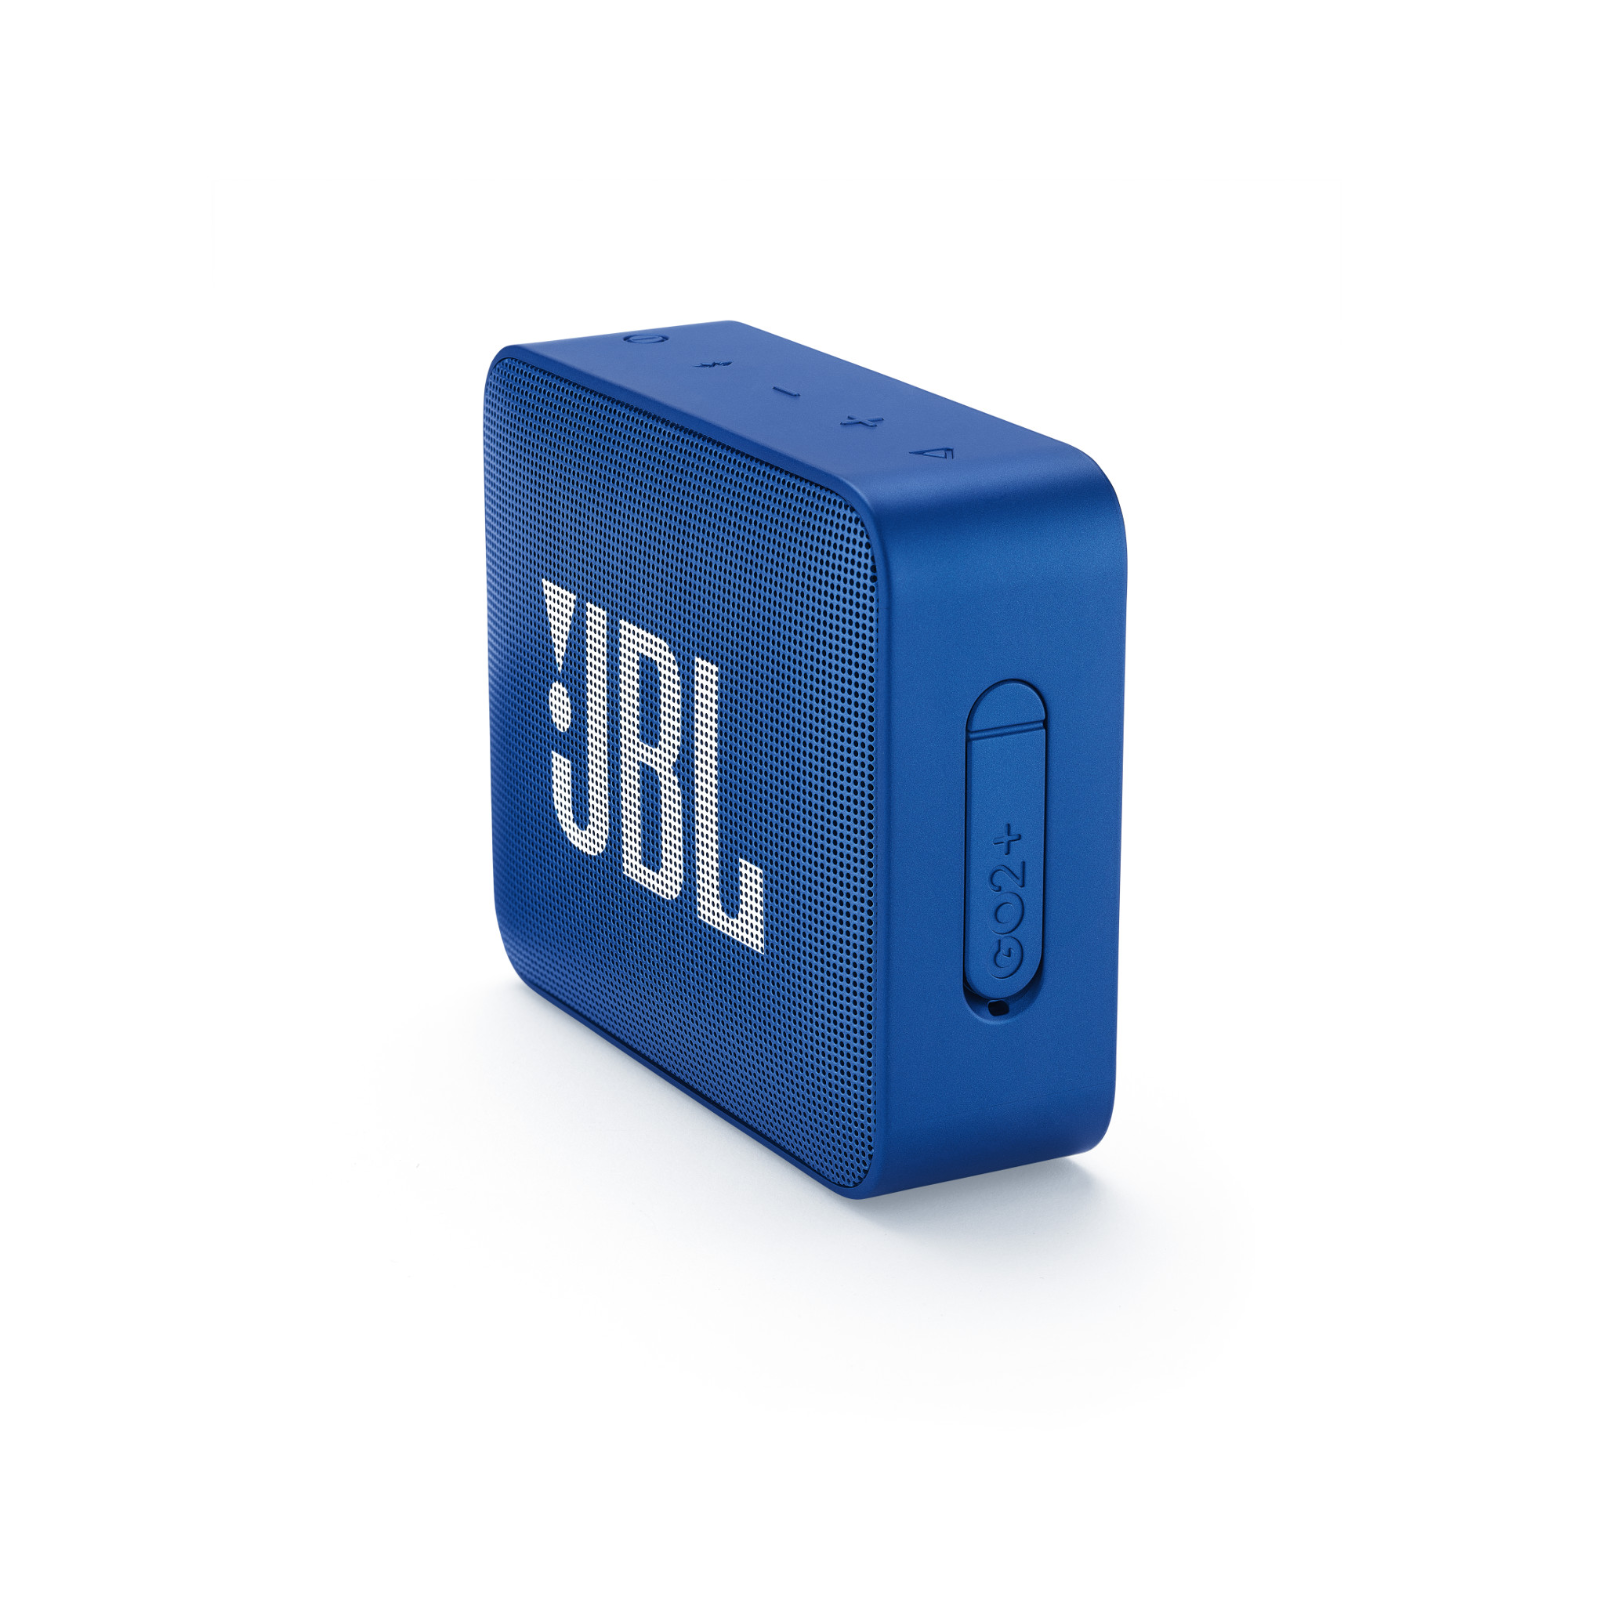 JBL GO2+ - Blue - Portable Bluetooth speaker - Detailshot 3